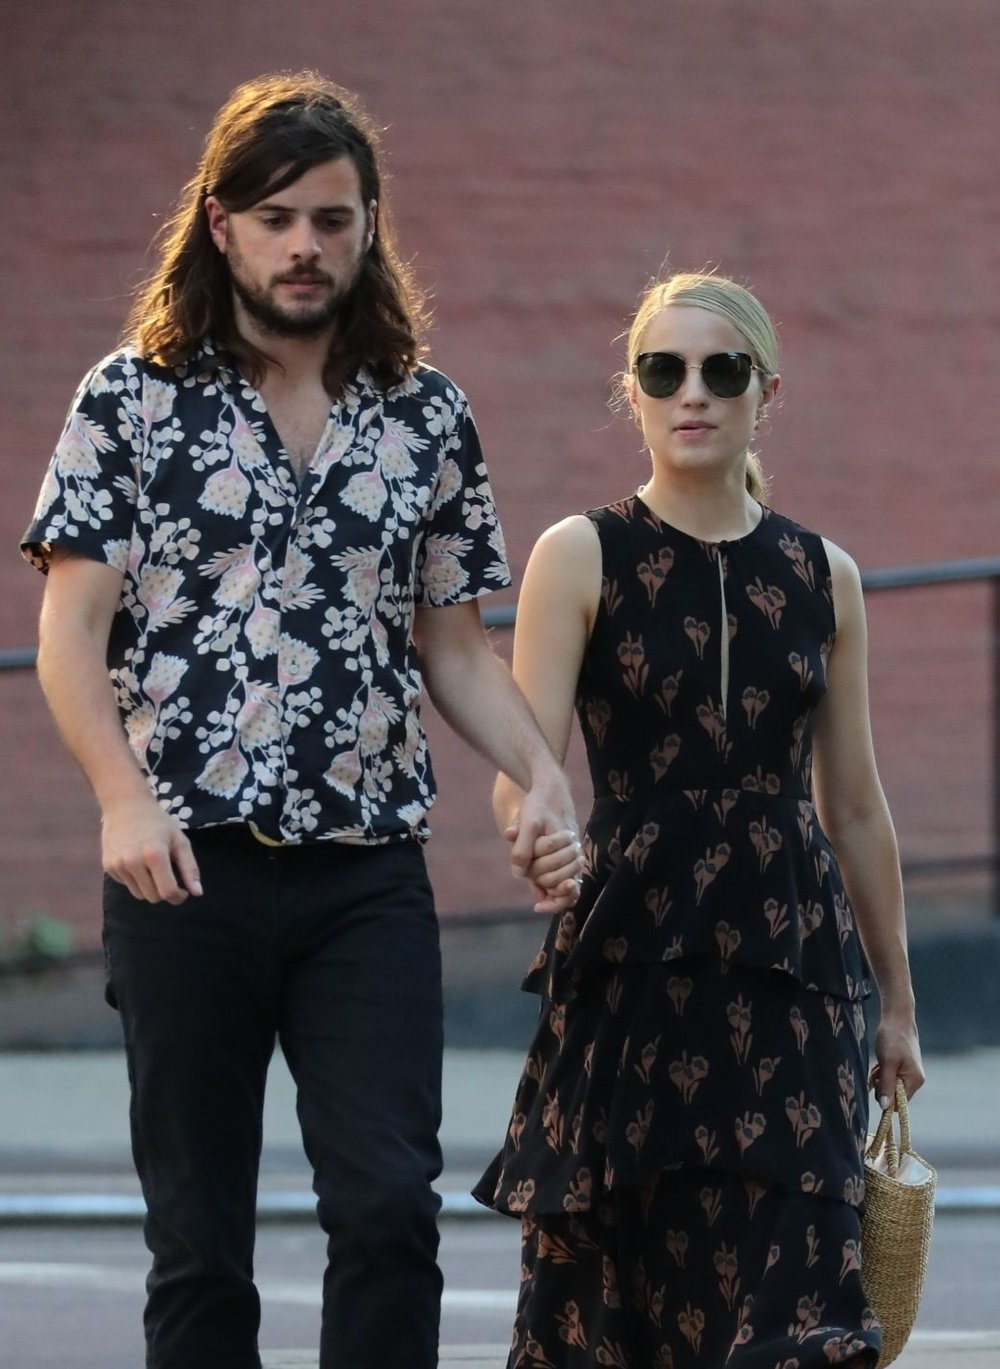 dianna-agron-out-holding-hands-with-her-husband-winston-marshall-in-new-york-9.jpg